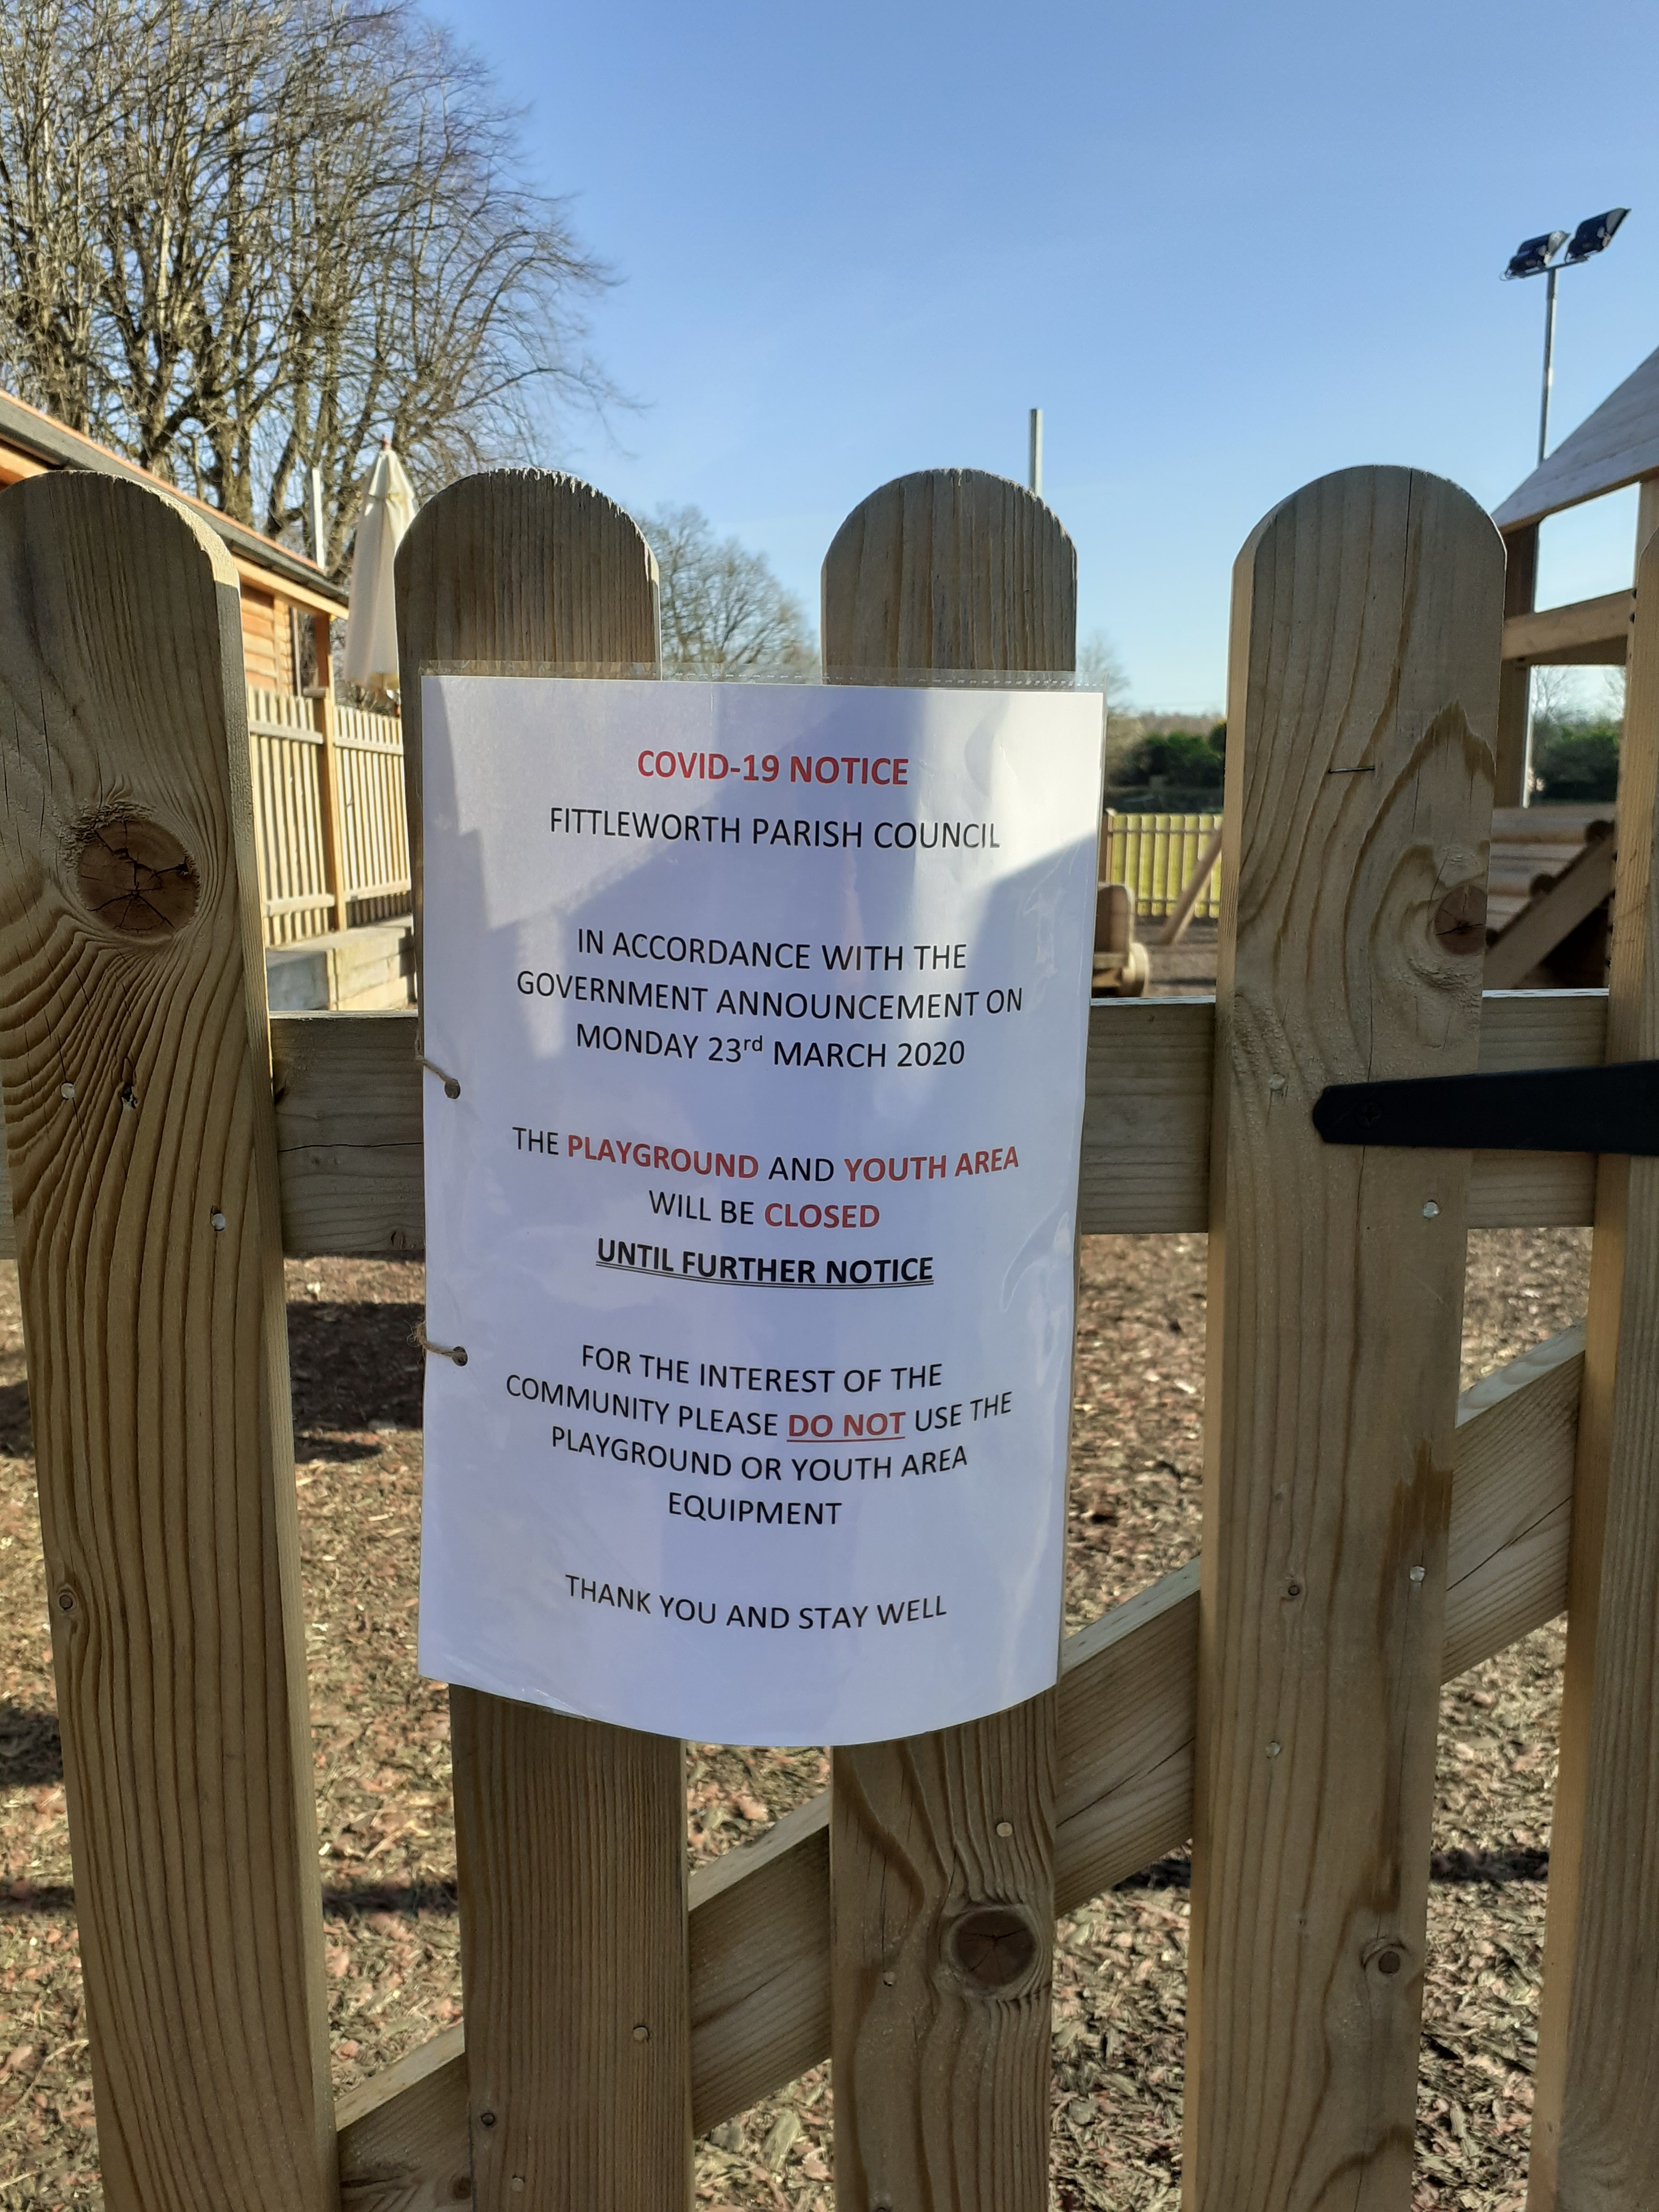 COVID 19 UPDATE – PLAYGROUND AND YOUTH AREA CLOSED UNTIL FURTHER NOTICE